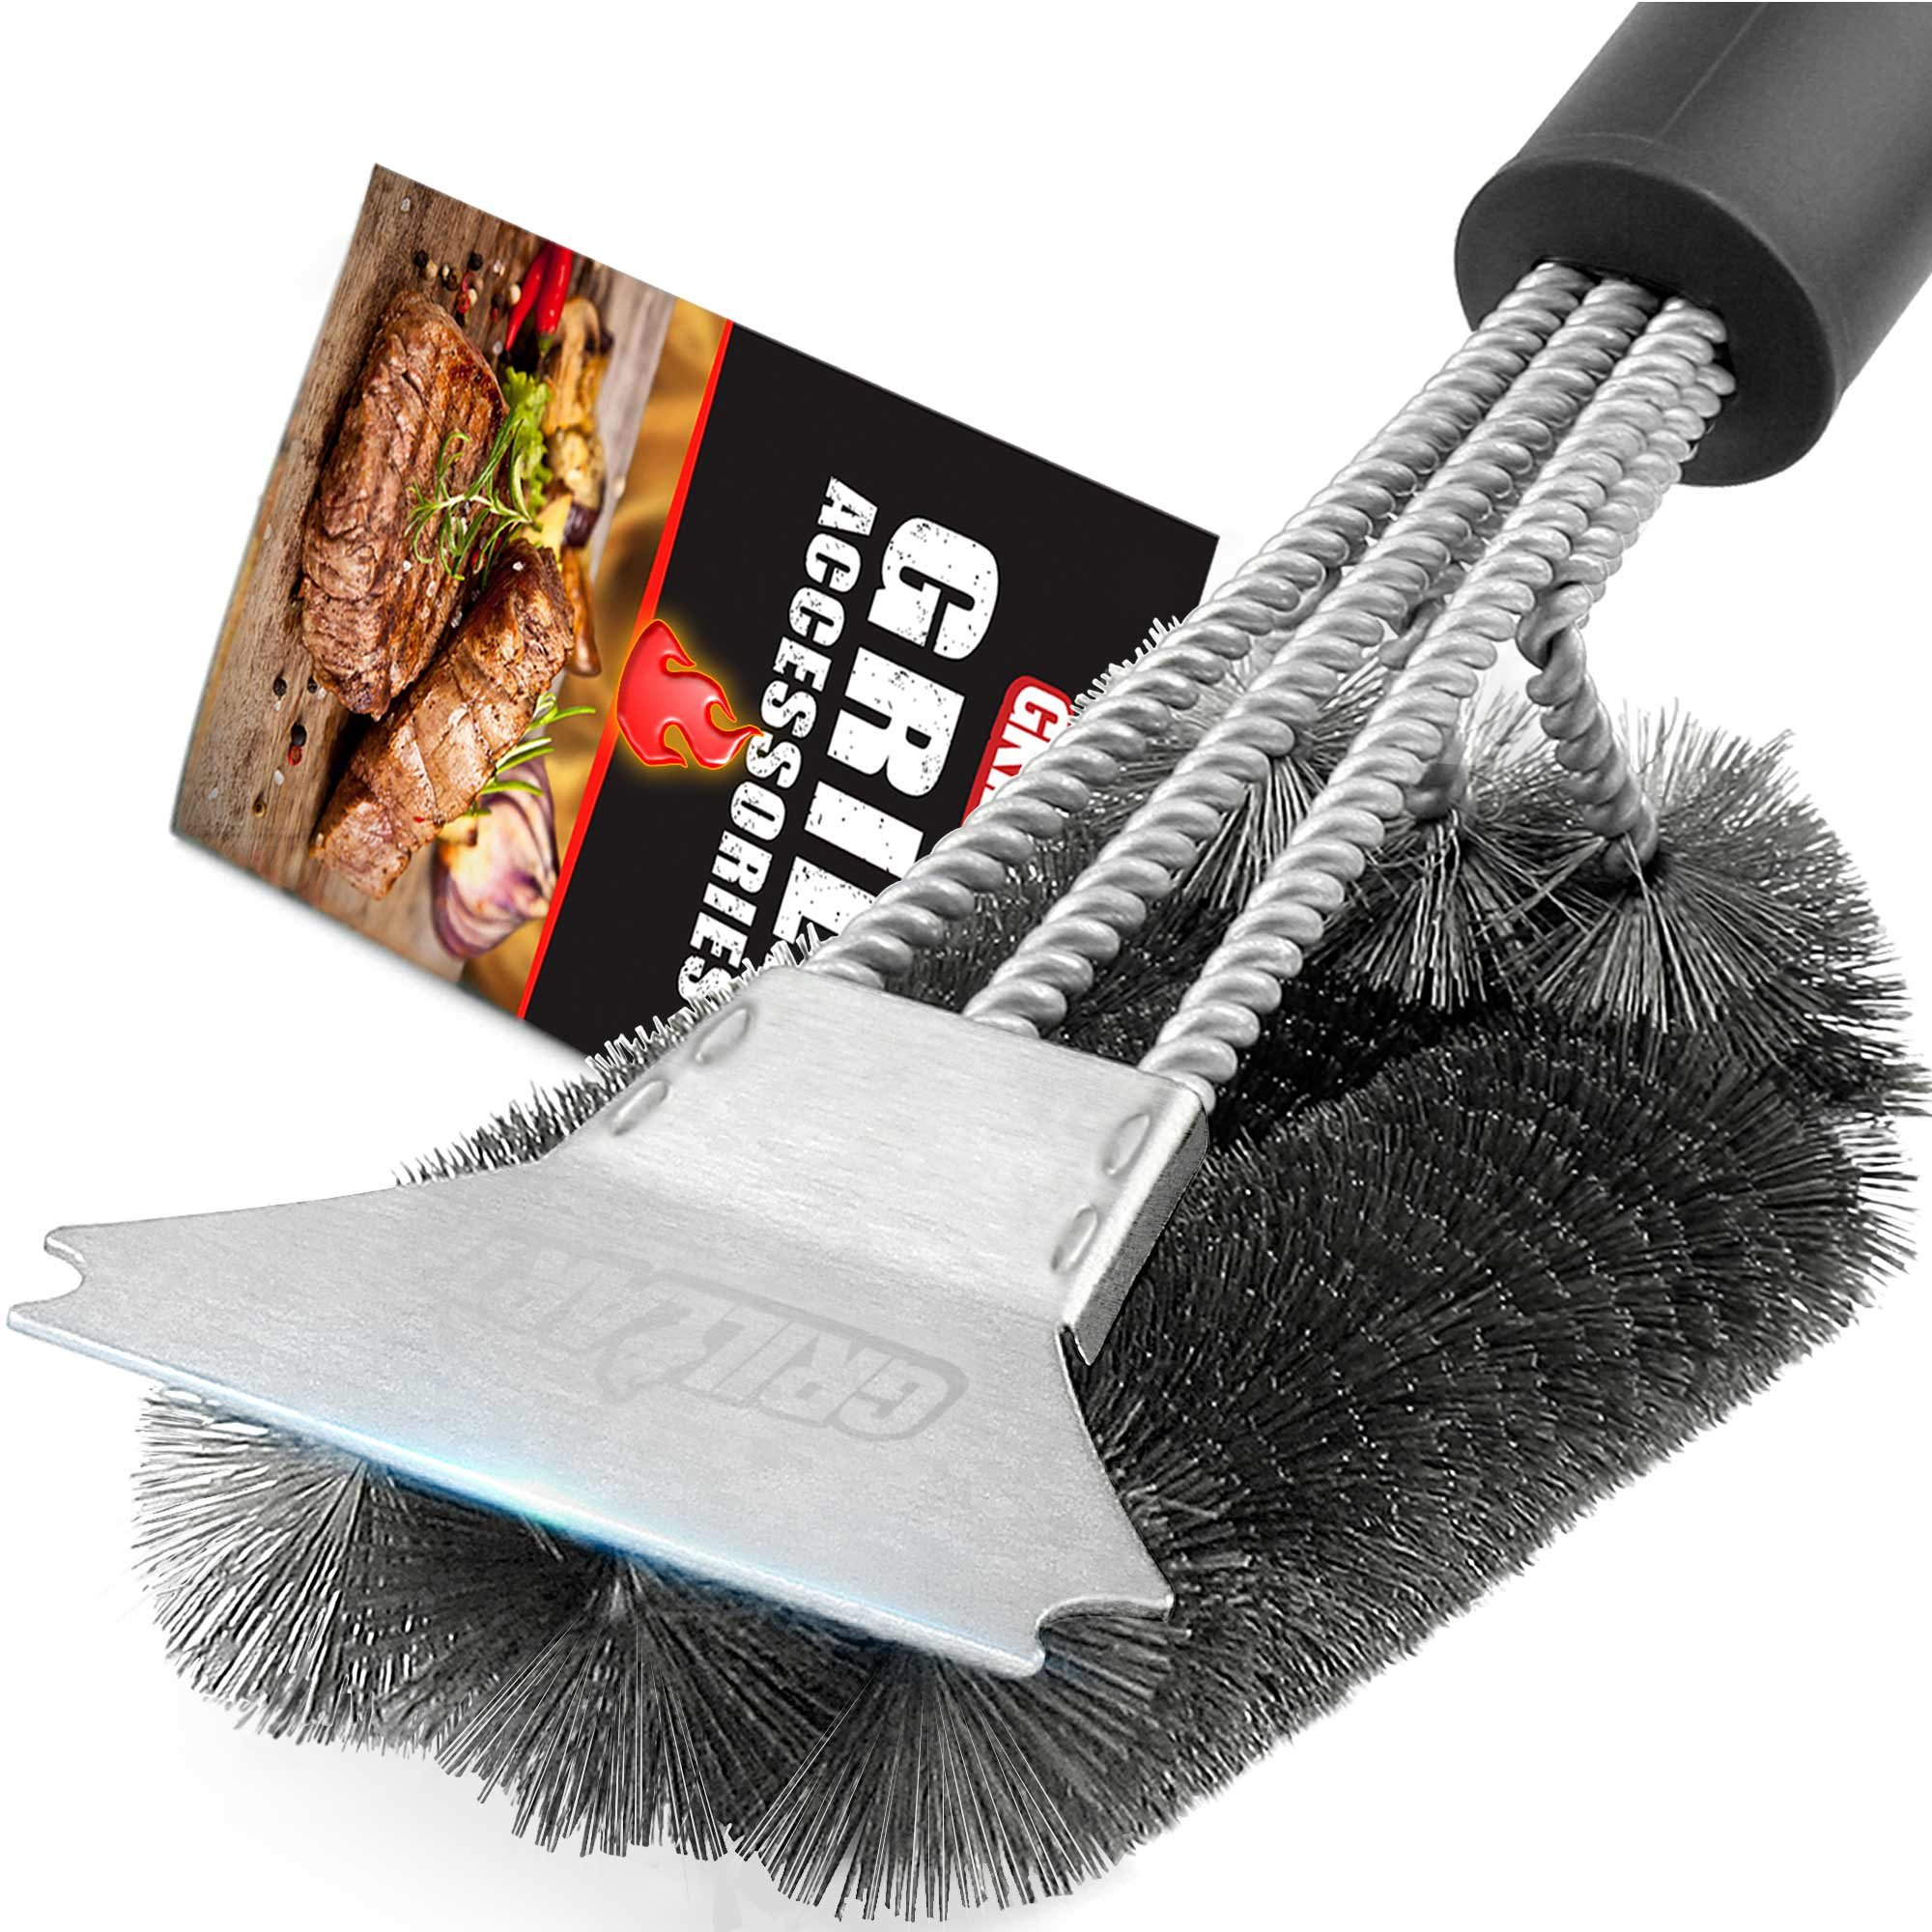 Grill Brush and Scraper - Extra Strong BBQ Cleaner Accessories - Safe Wire Bristles 18''Stainless Steel Barbecue Triple Scrubber Cleaning Brush for Weber Gas/Charcoal Grilling Grates, Best wizard tool